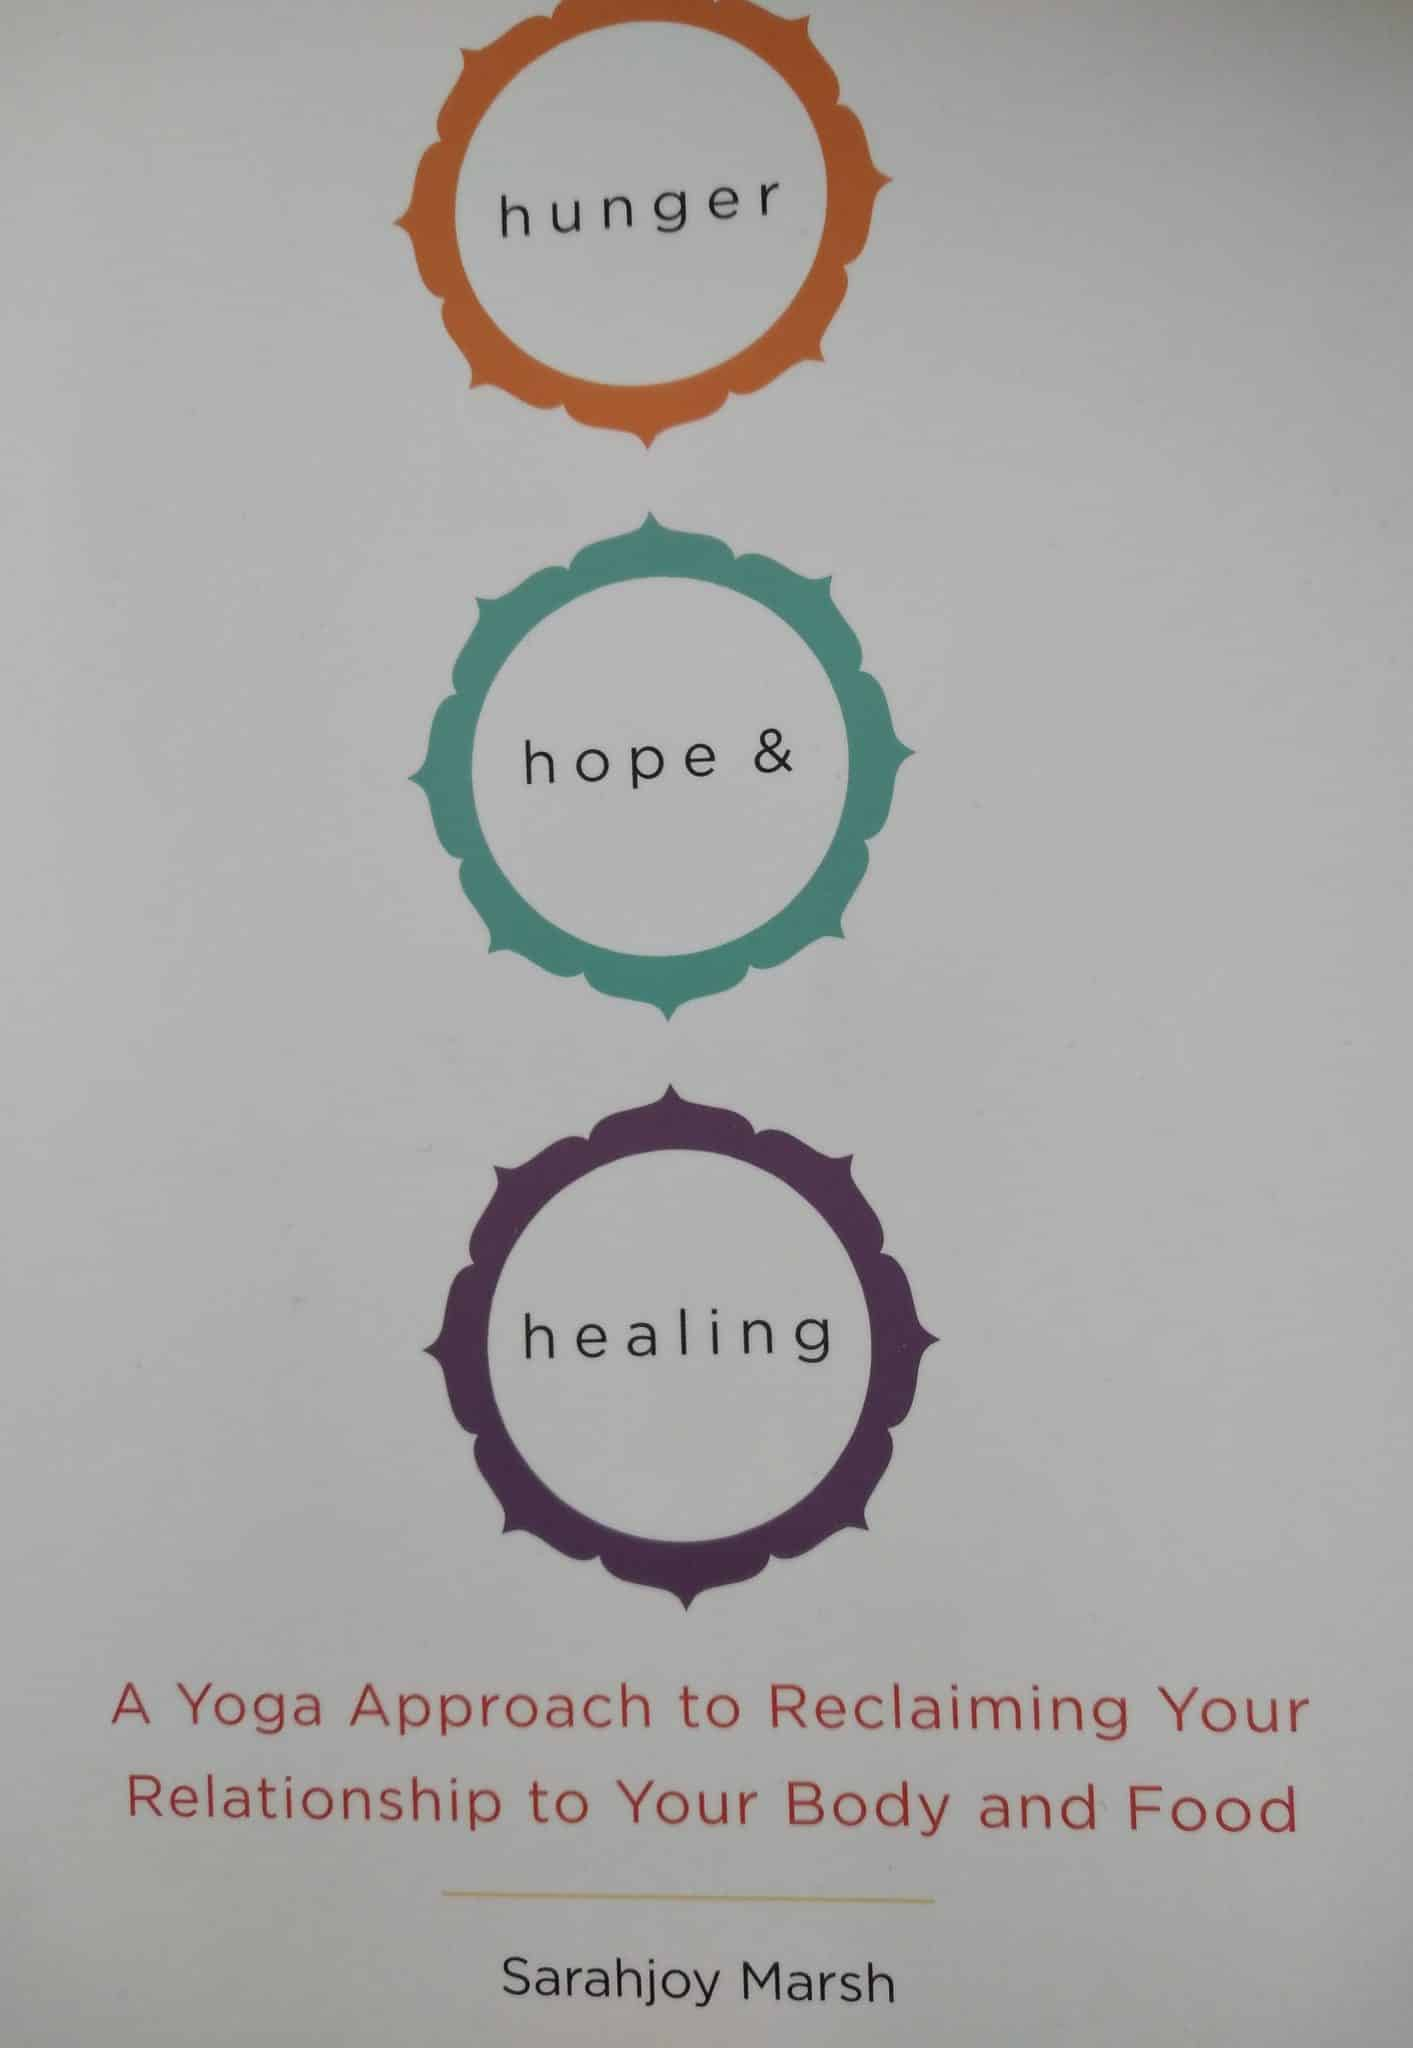 Hunger, Hope & Healing. A Yoga Approach To Reclaiming Your Relationship To Your Body And Food